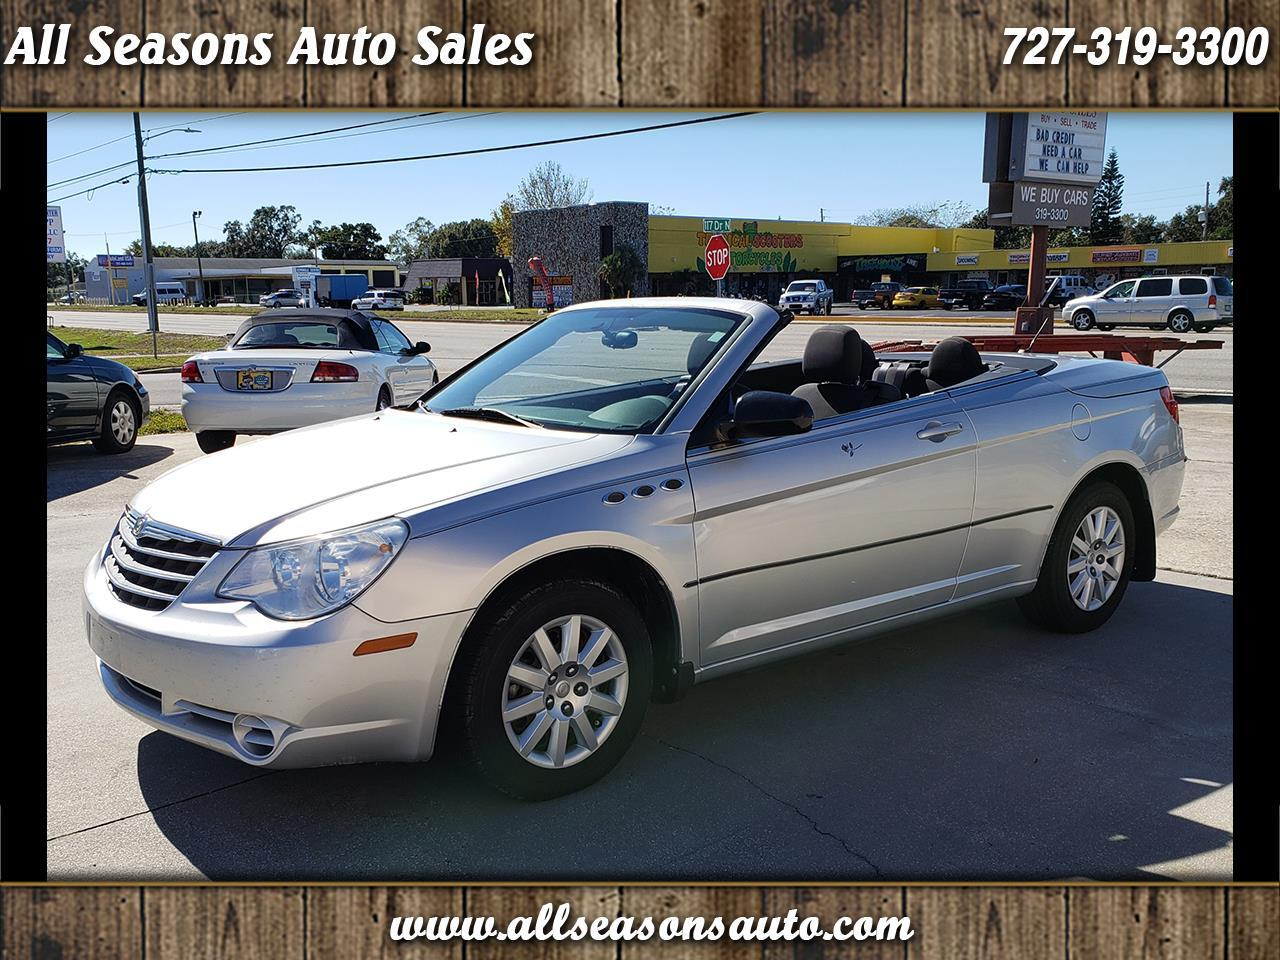 2010 Chrysler Sebring Convertible LX